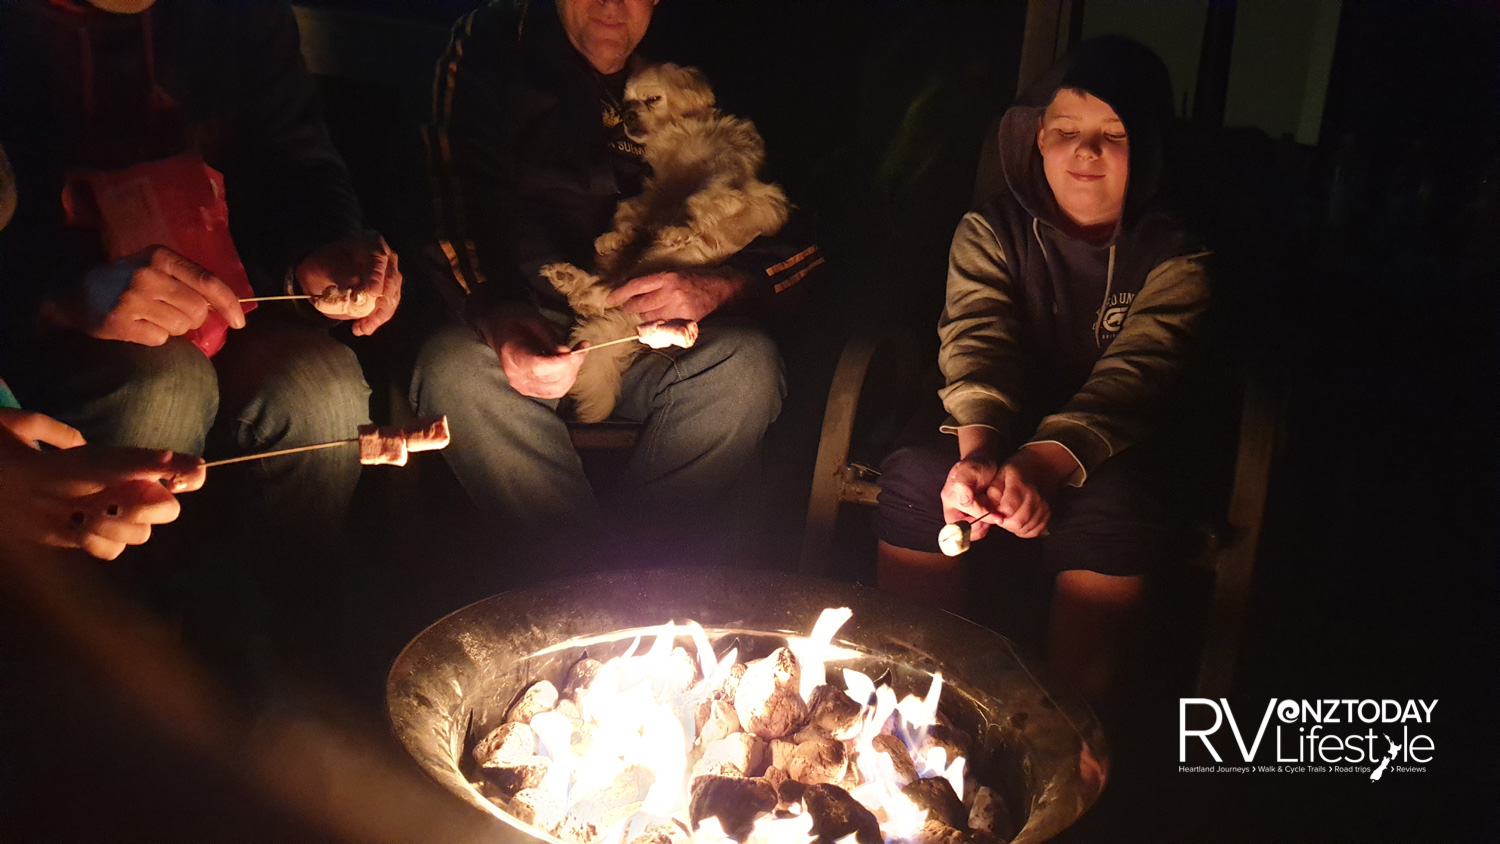 The fire was so warm, I wasn't allowed a marshmallow though